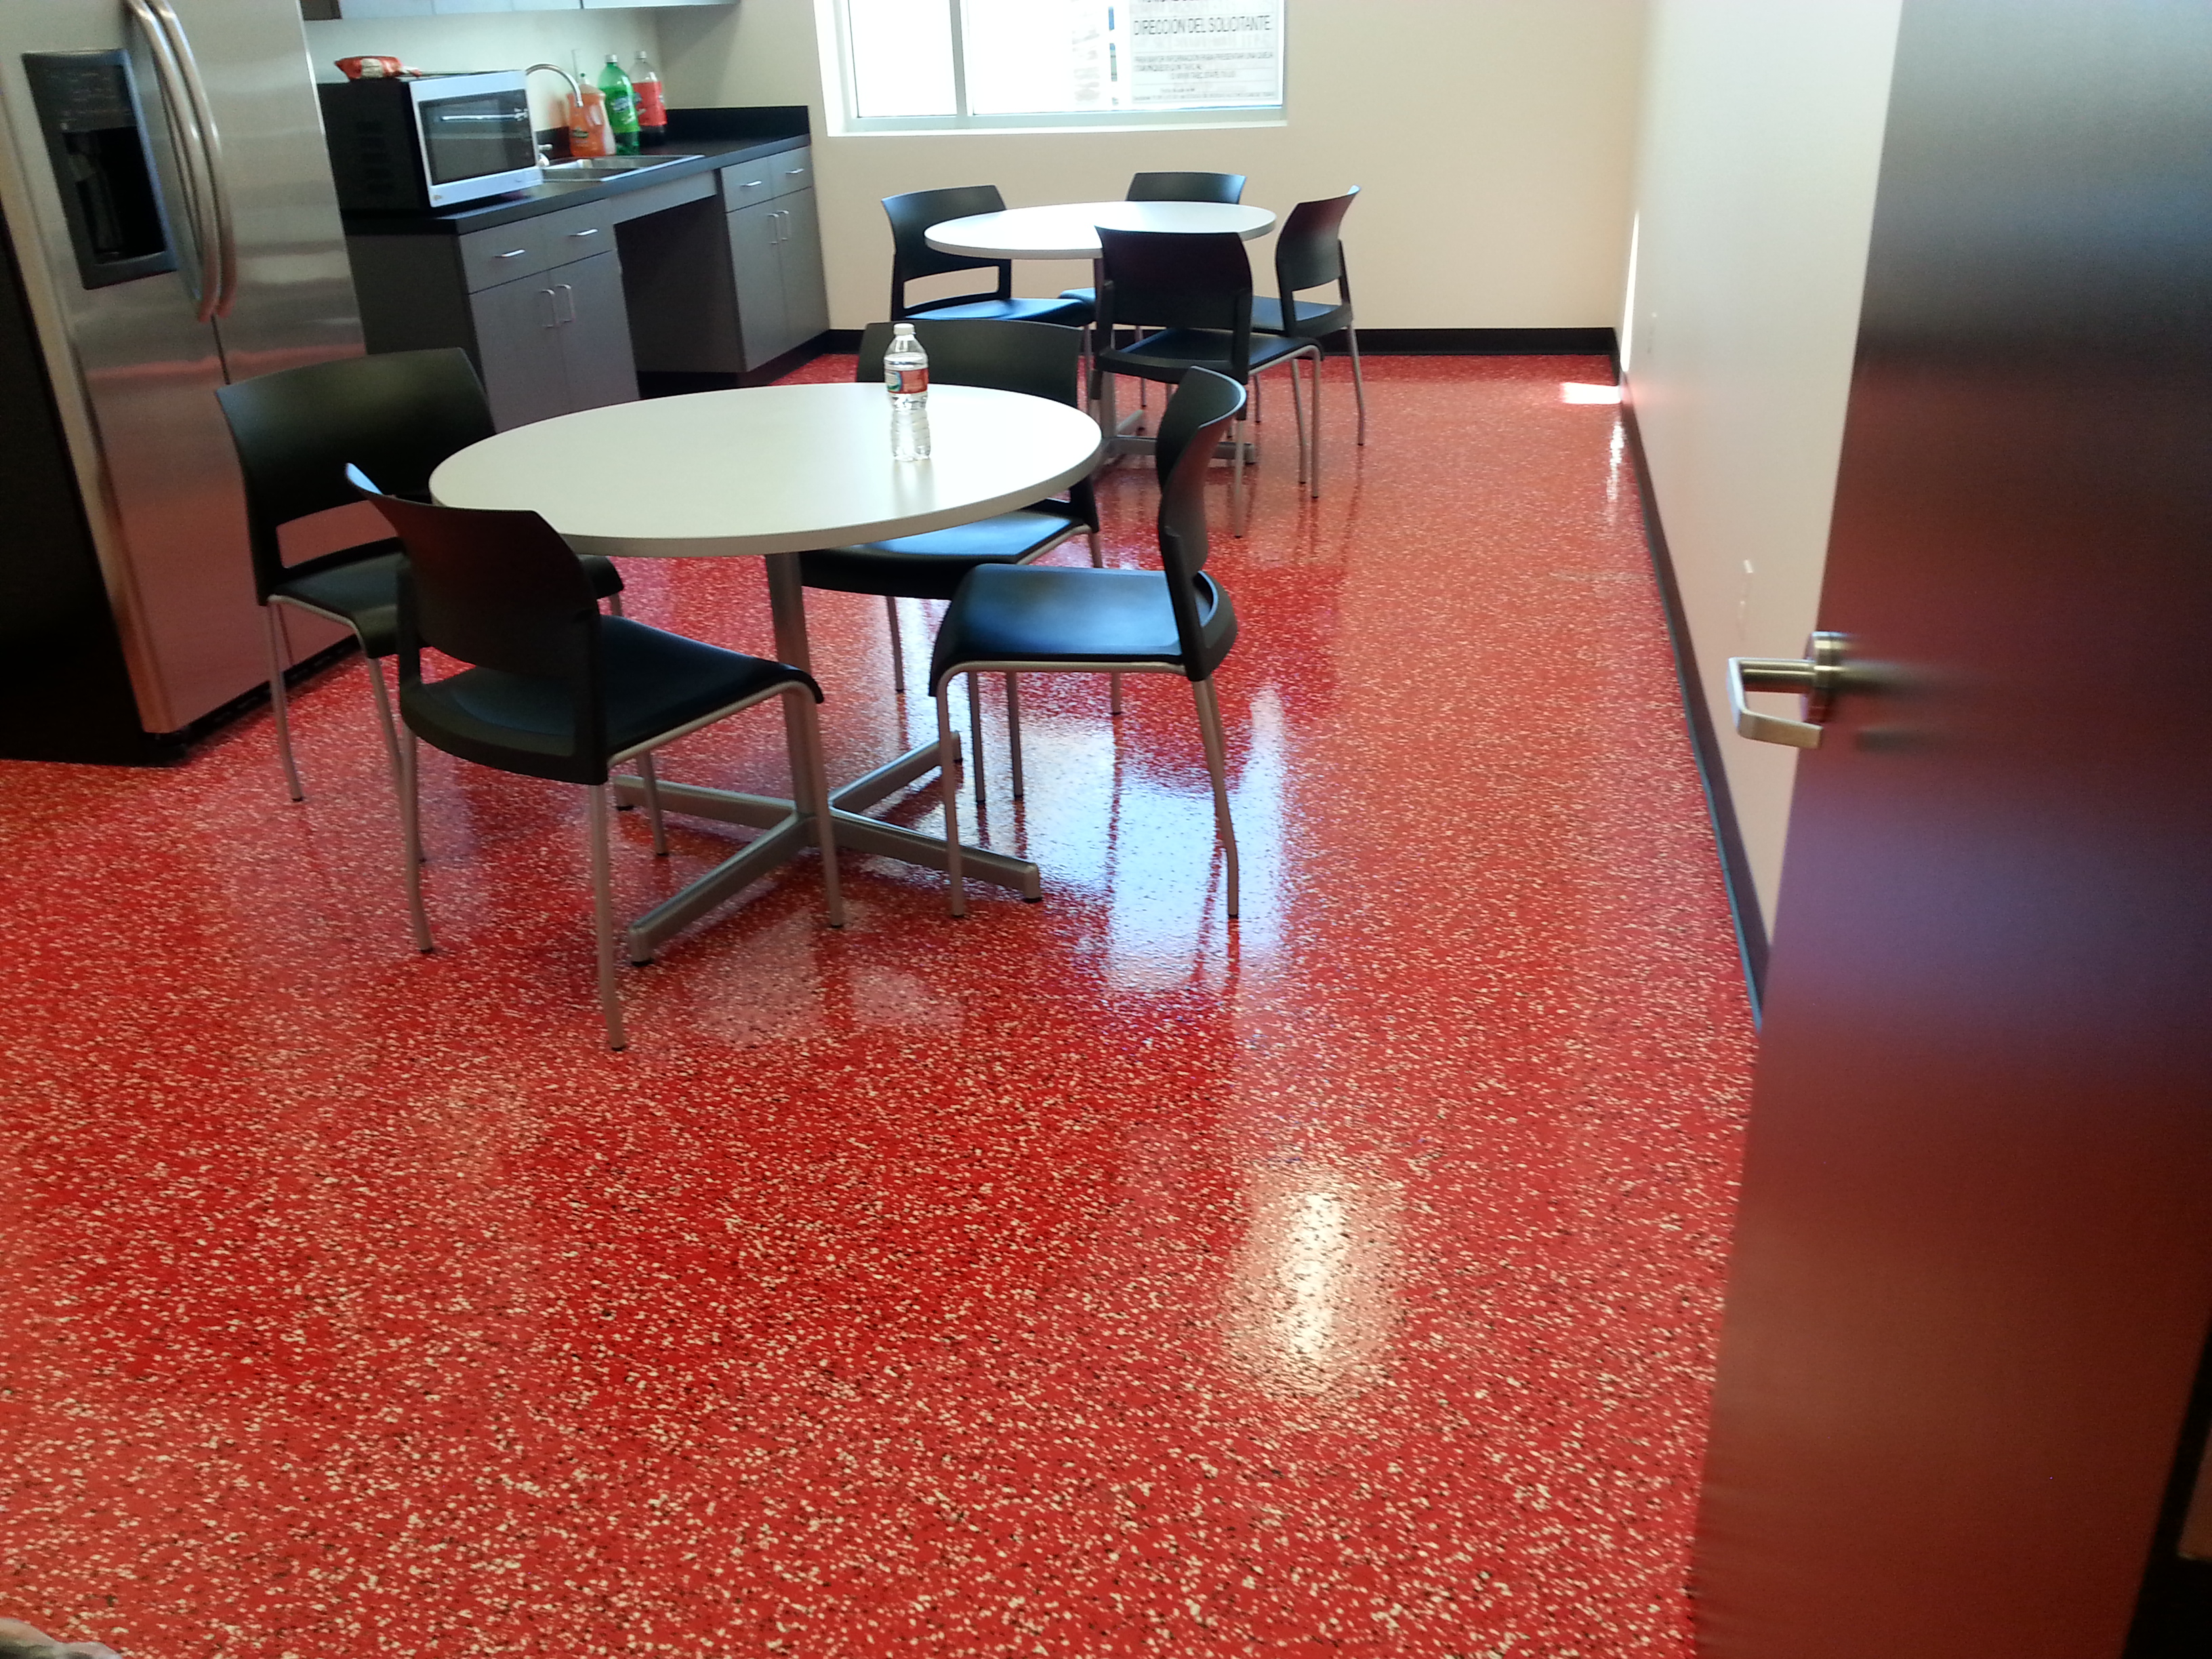 Commercial Gorilla Garage Coatings Are Perfect For Break Rooms, Office  Kitchens And Similar Spaces.